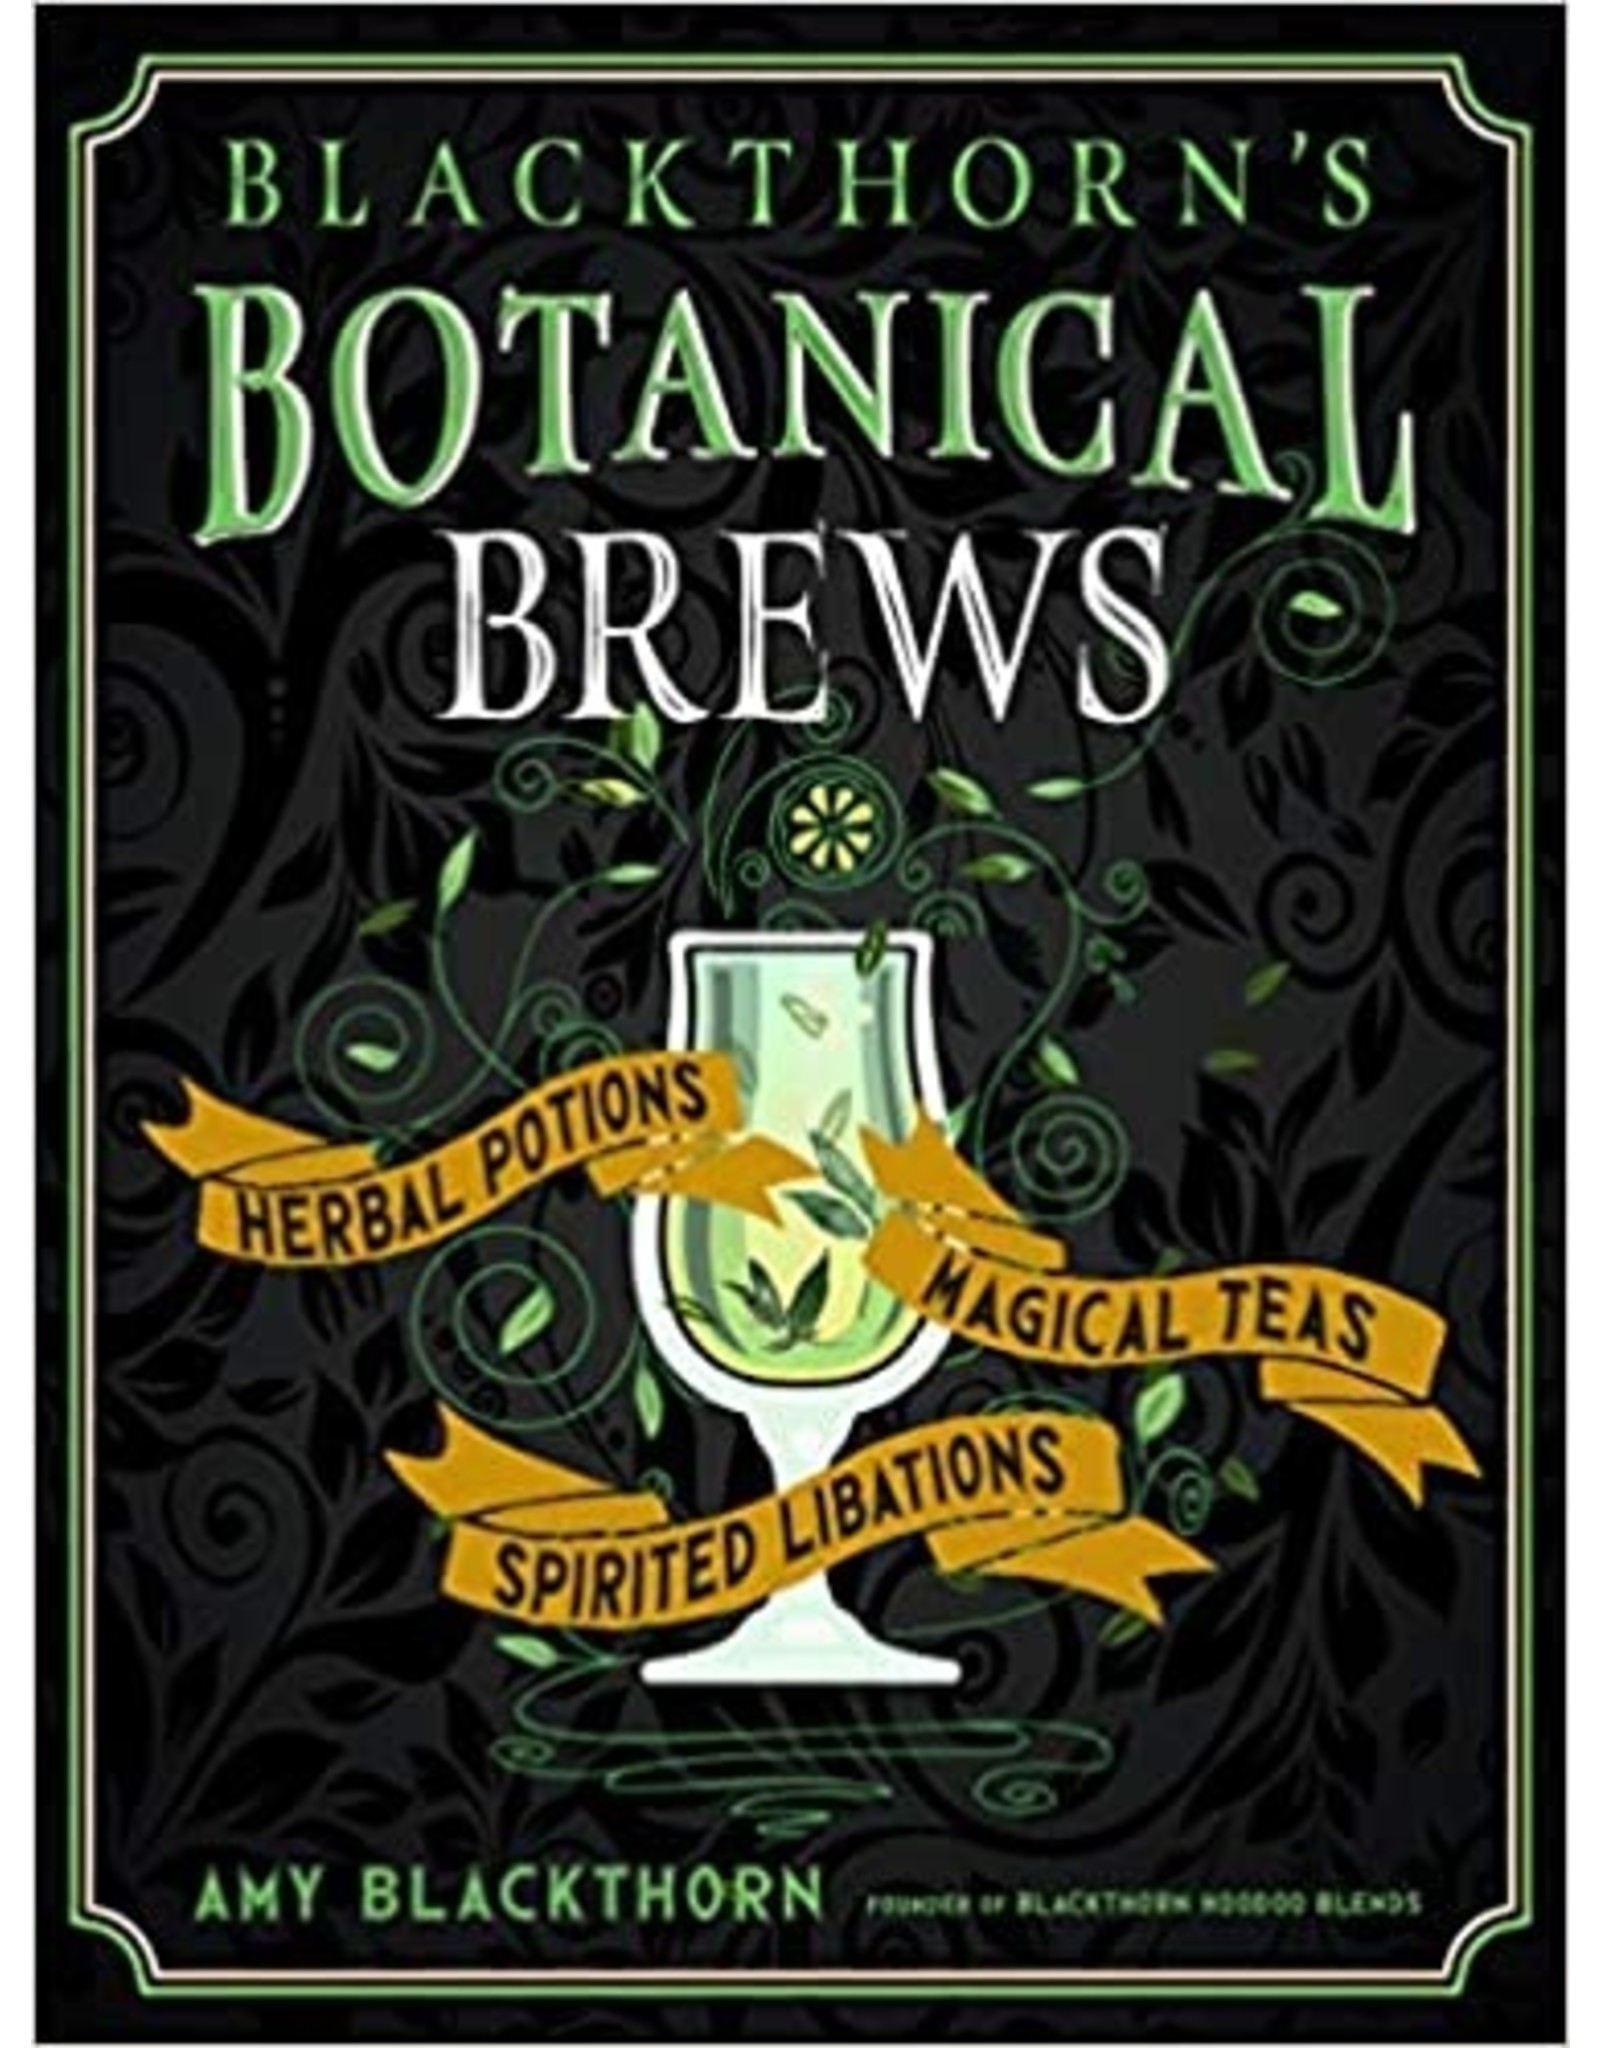 Blackthorn's Botanical Brews: Herbal Potions, Magical Teas, Spirited Libations